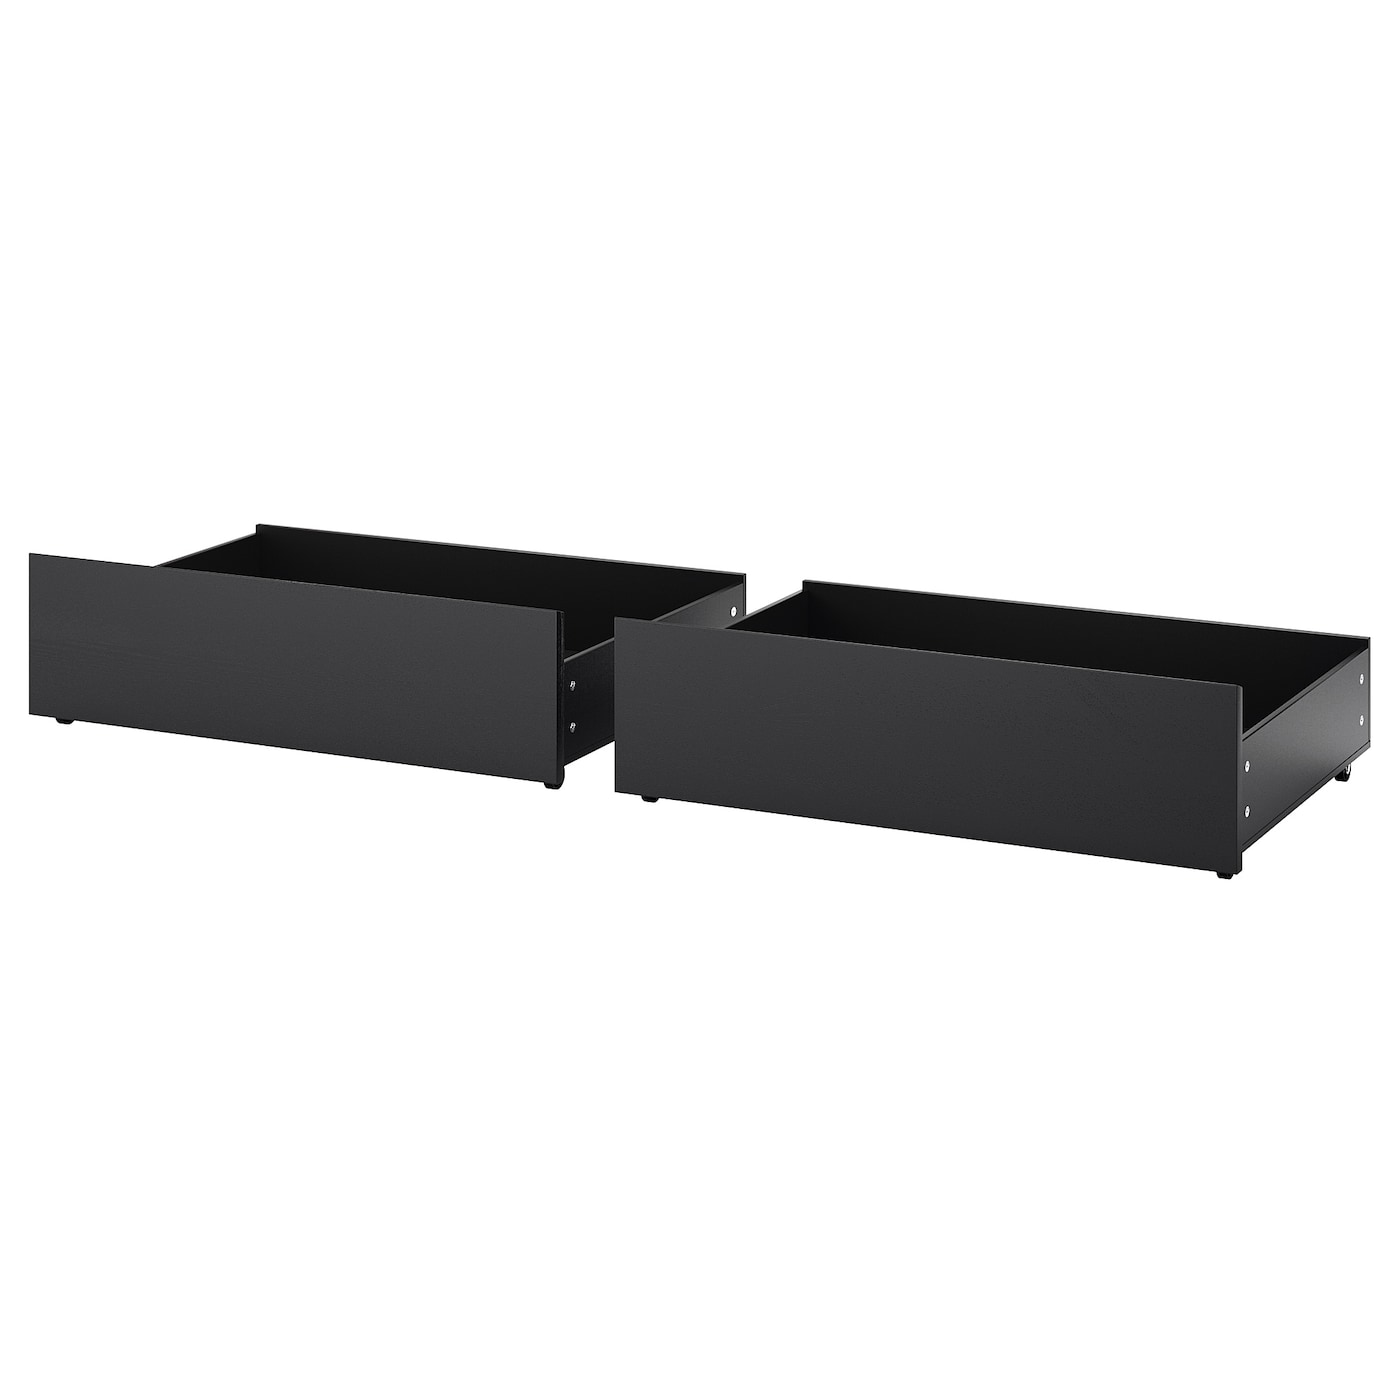 Malm Bed Storage Box For High Bed Frame Black Brown 200 Cm Ikea